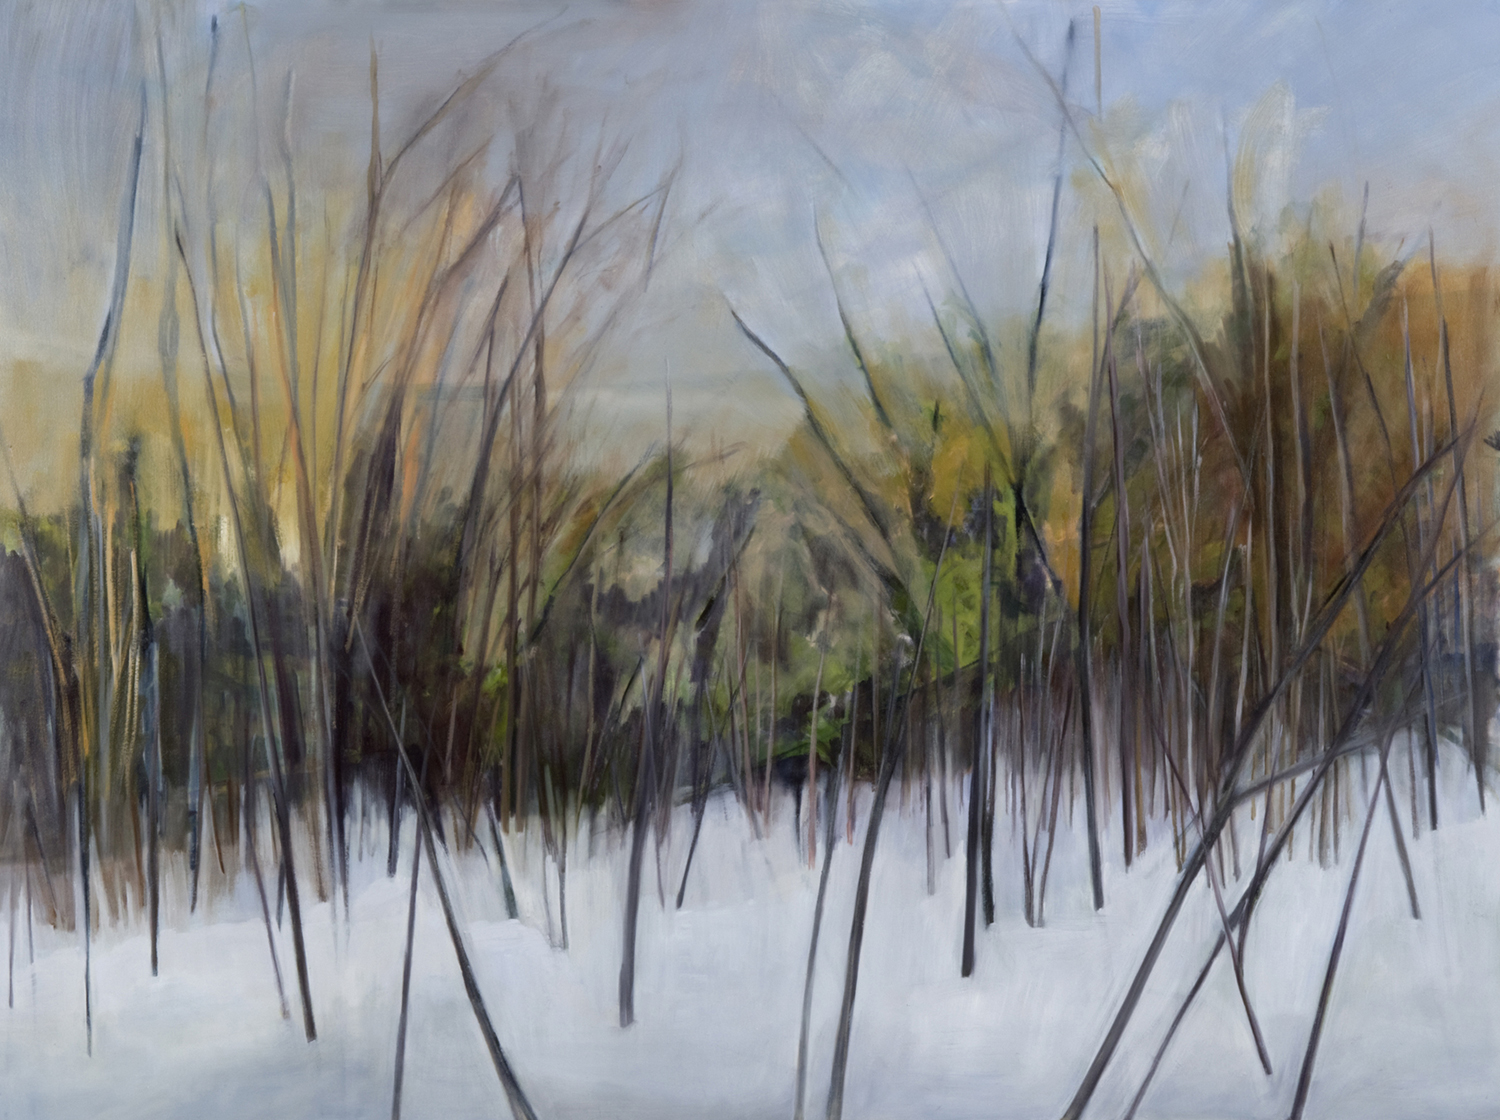 Early Winter , 2008, Oil on canvas, 54 x 72 inches (Private Collection, Fredericton, NB)